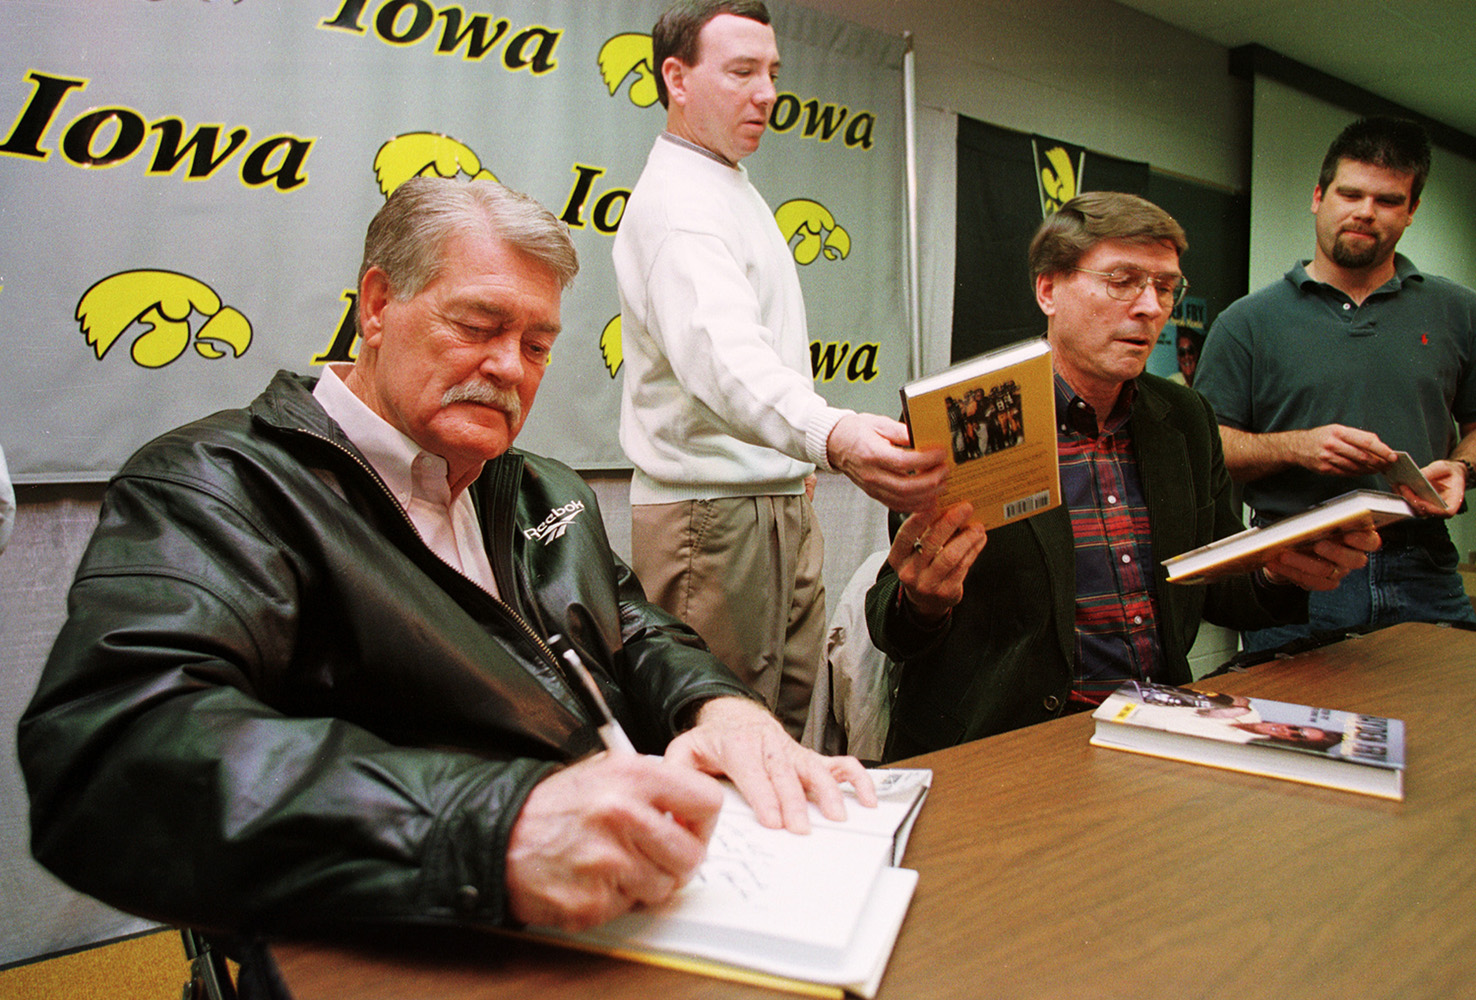 Former University of Iowa head football coach Hayden Fry signs copies of his book